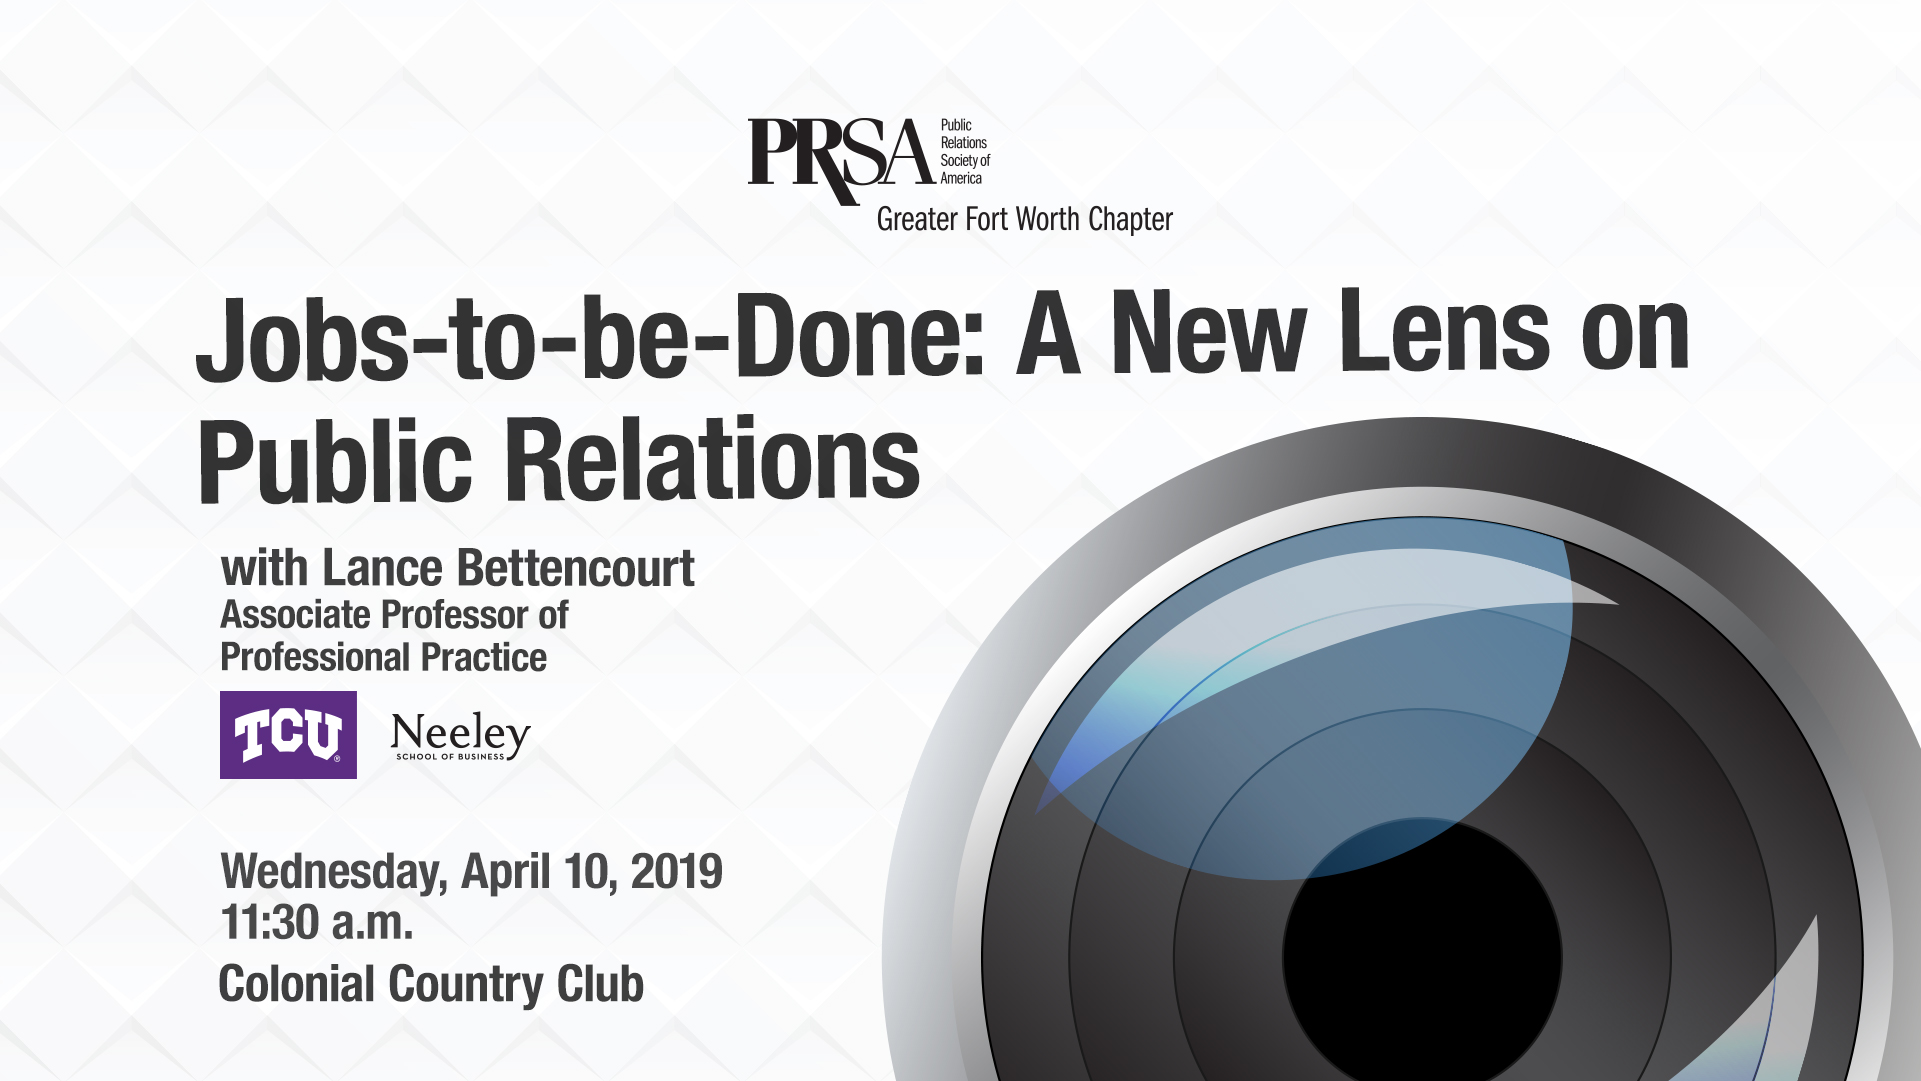 Jobs-to-be-Done – A New Lens on Public Relations